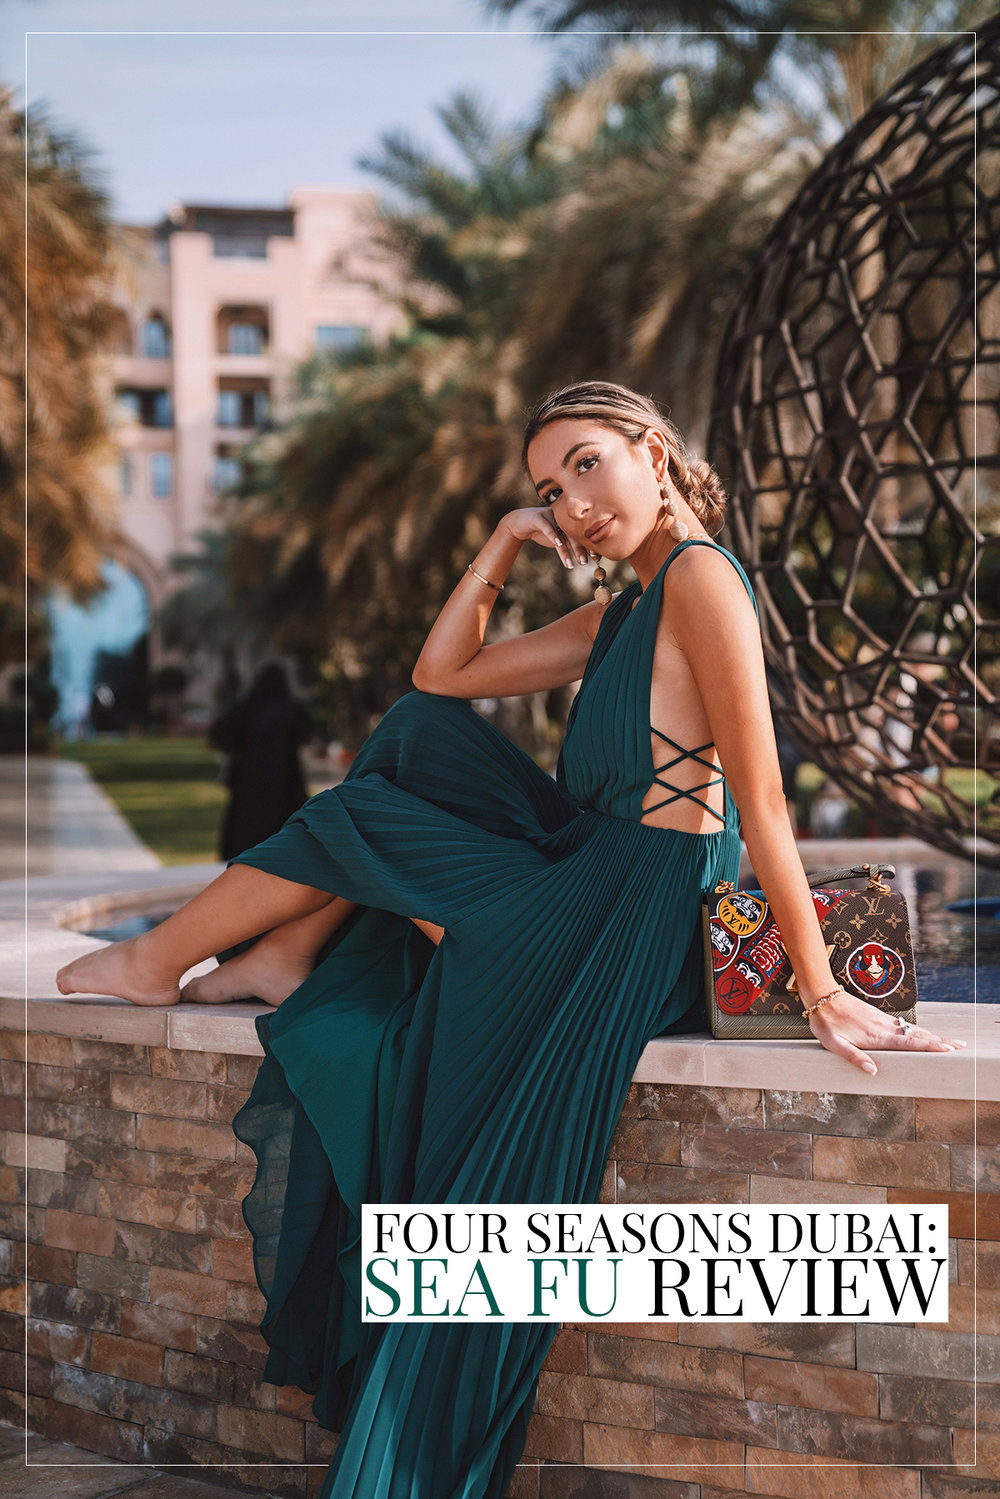 Ulia Ali - travel and fashion blogger, fiction writer. Review on Four Seasons Dubai at Jumeirah. Sea Fu restaurant.